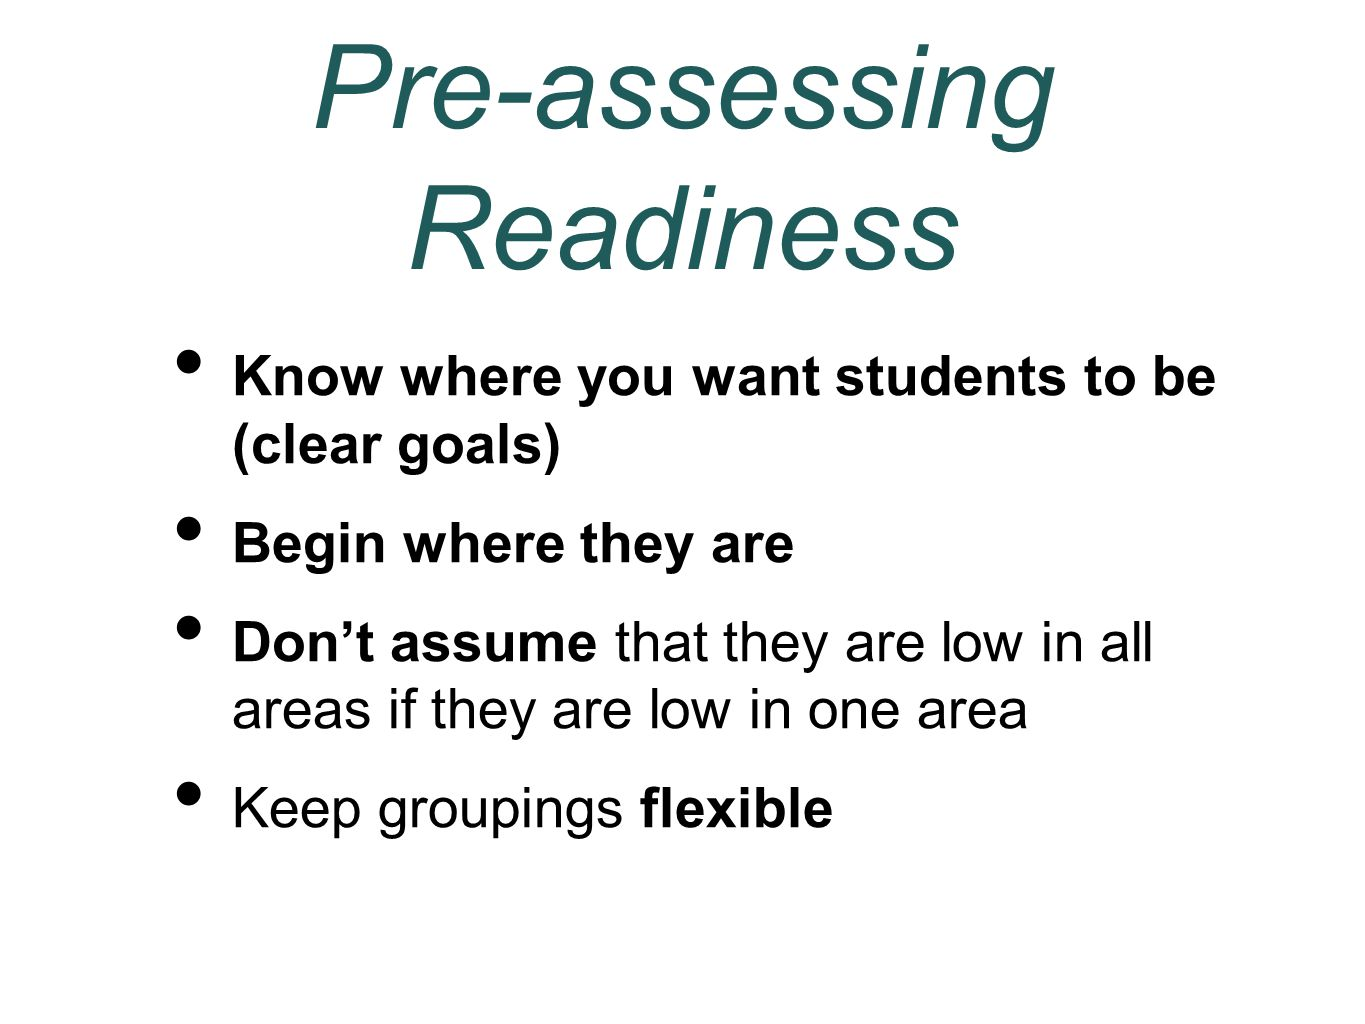 Pre-assessing Readiness Know where you want students to be (clear goals) Begin where they are Don't assume that they are low in all areas if they are low in one area Keep groupings flexible